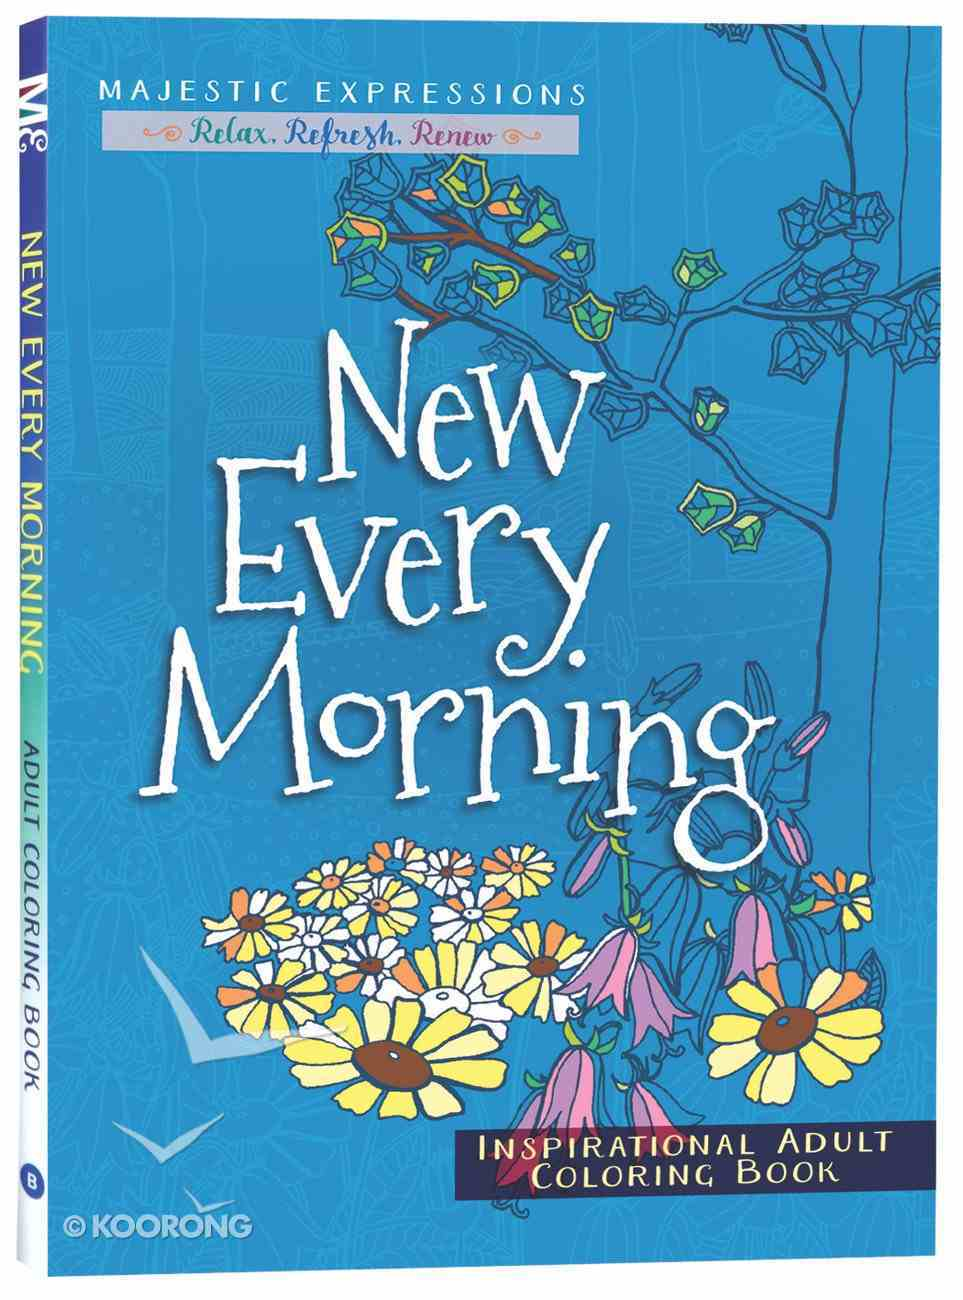 New Every Morning (Majestic Expressions) (Adult Coloring Books Series) Paperback